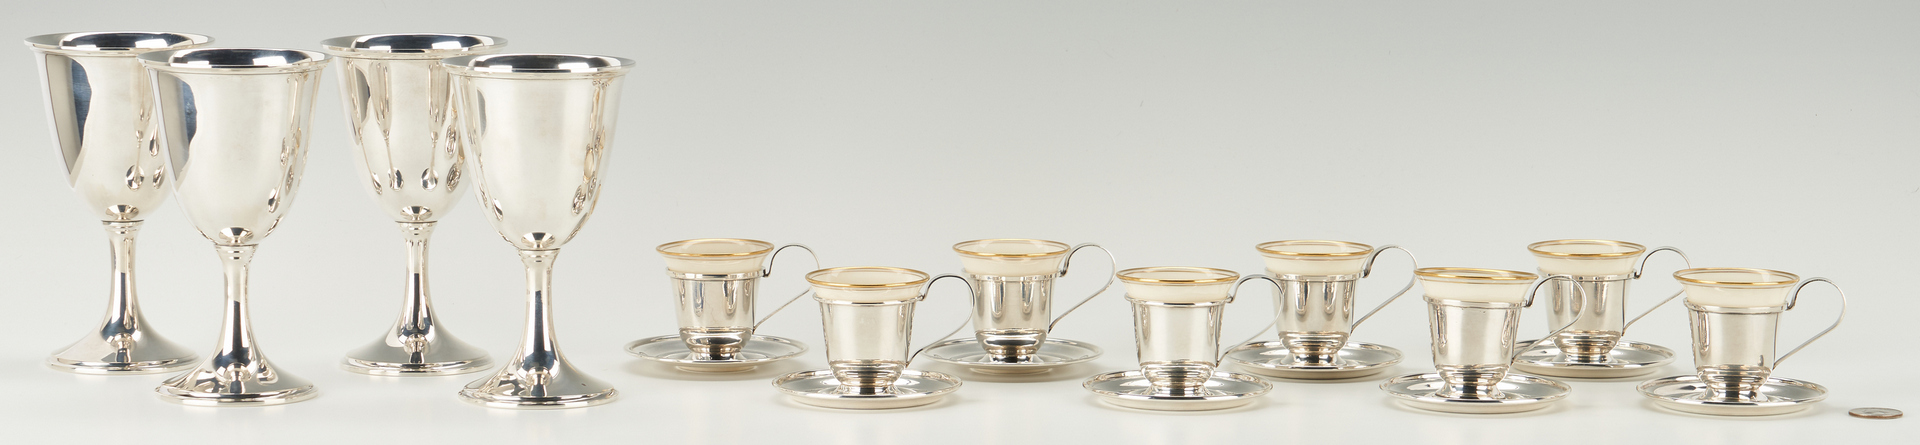 Lot 528: 12 Sterling Beverage Items, incl. Kirk & Son